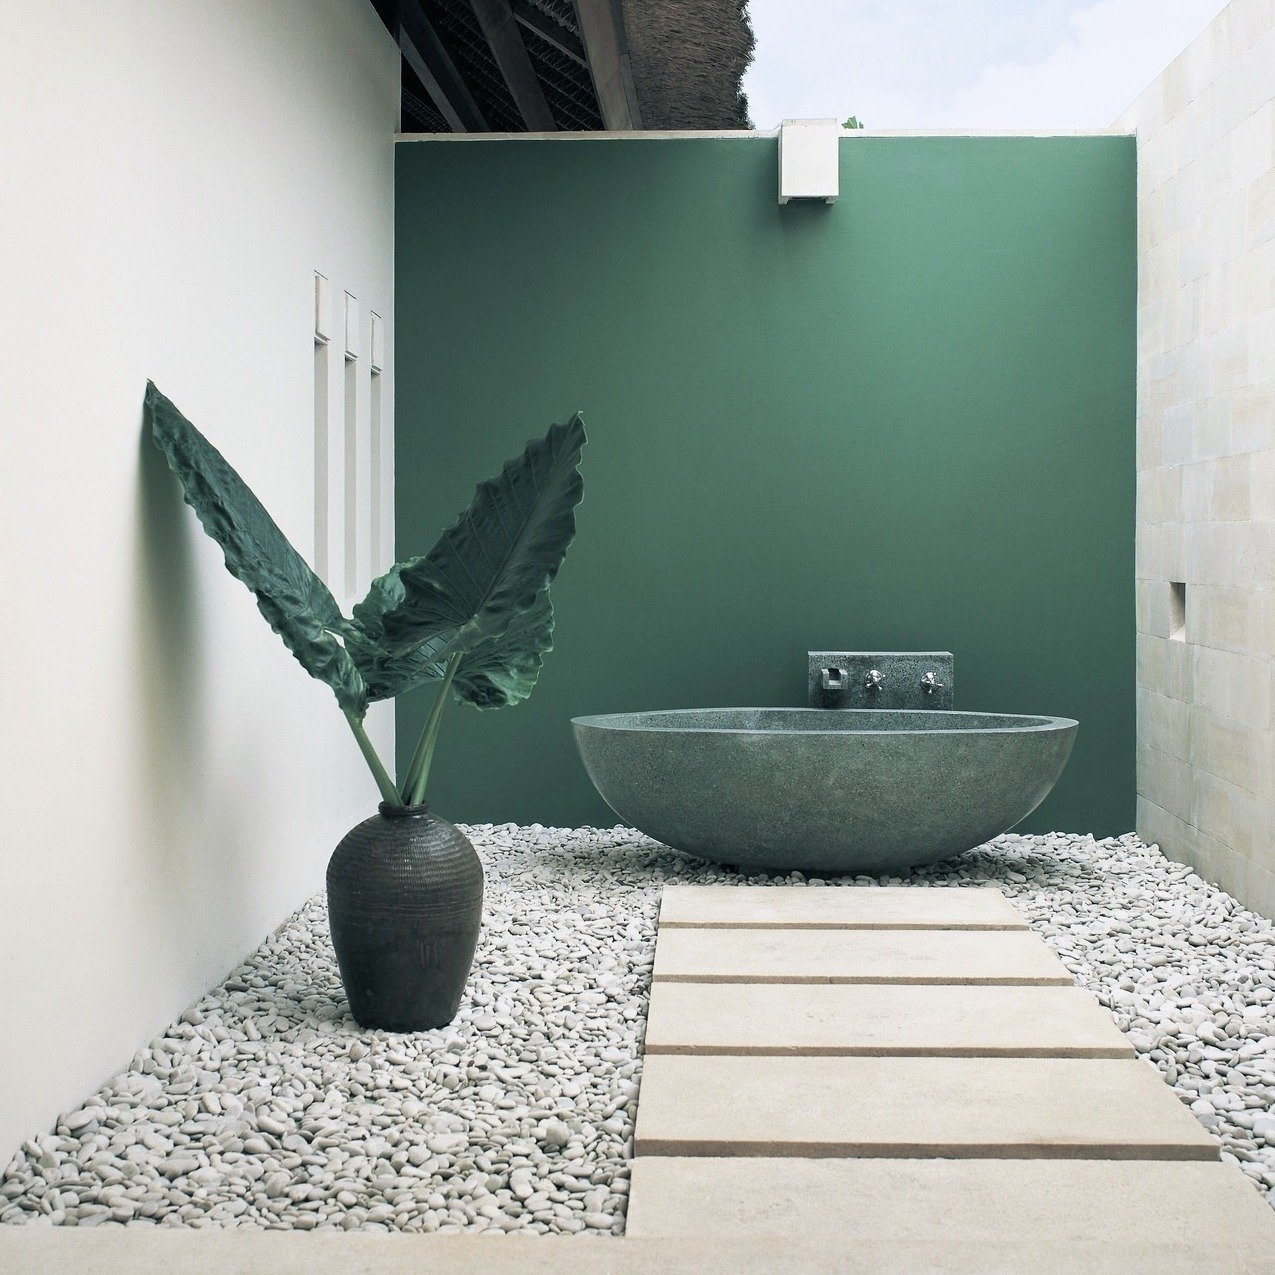 A summer outdoor bathroom: the luxurious way to cool off